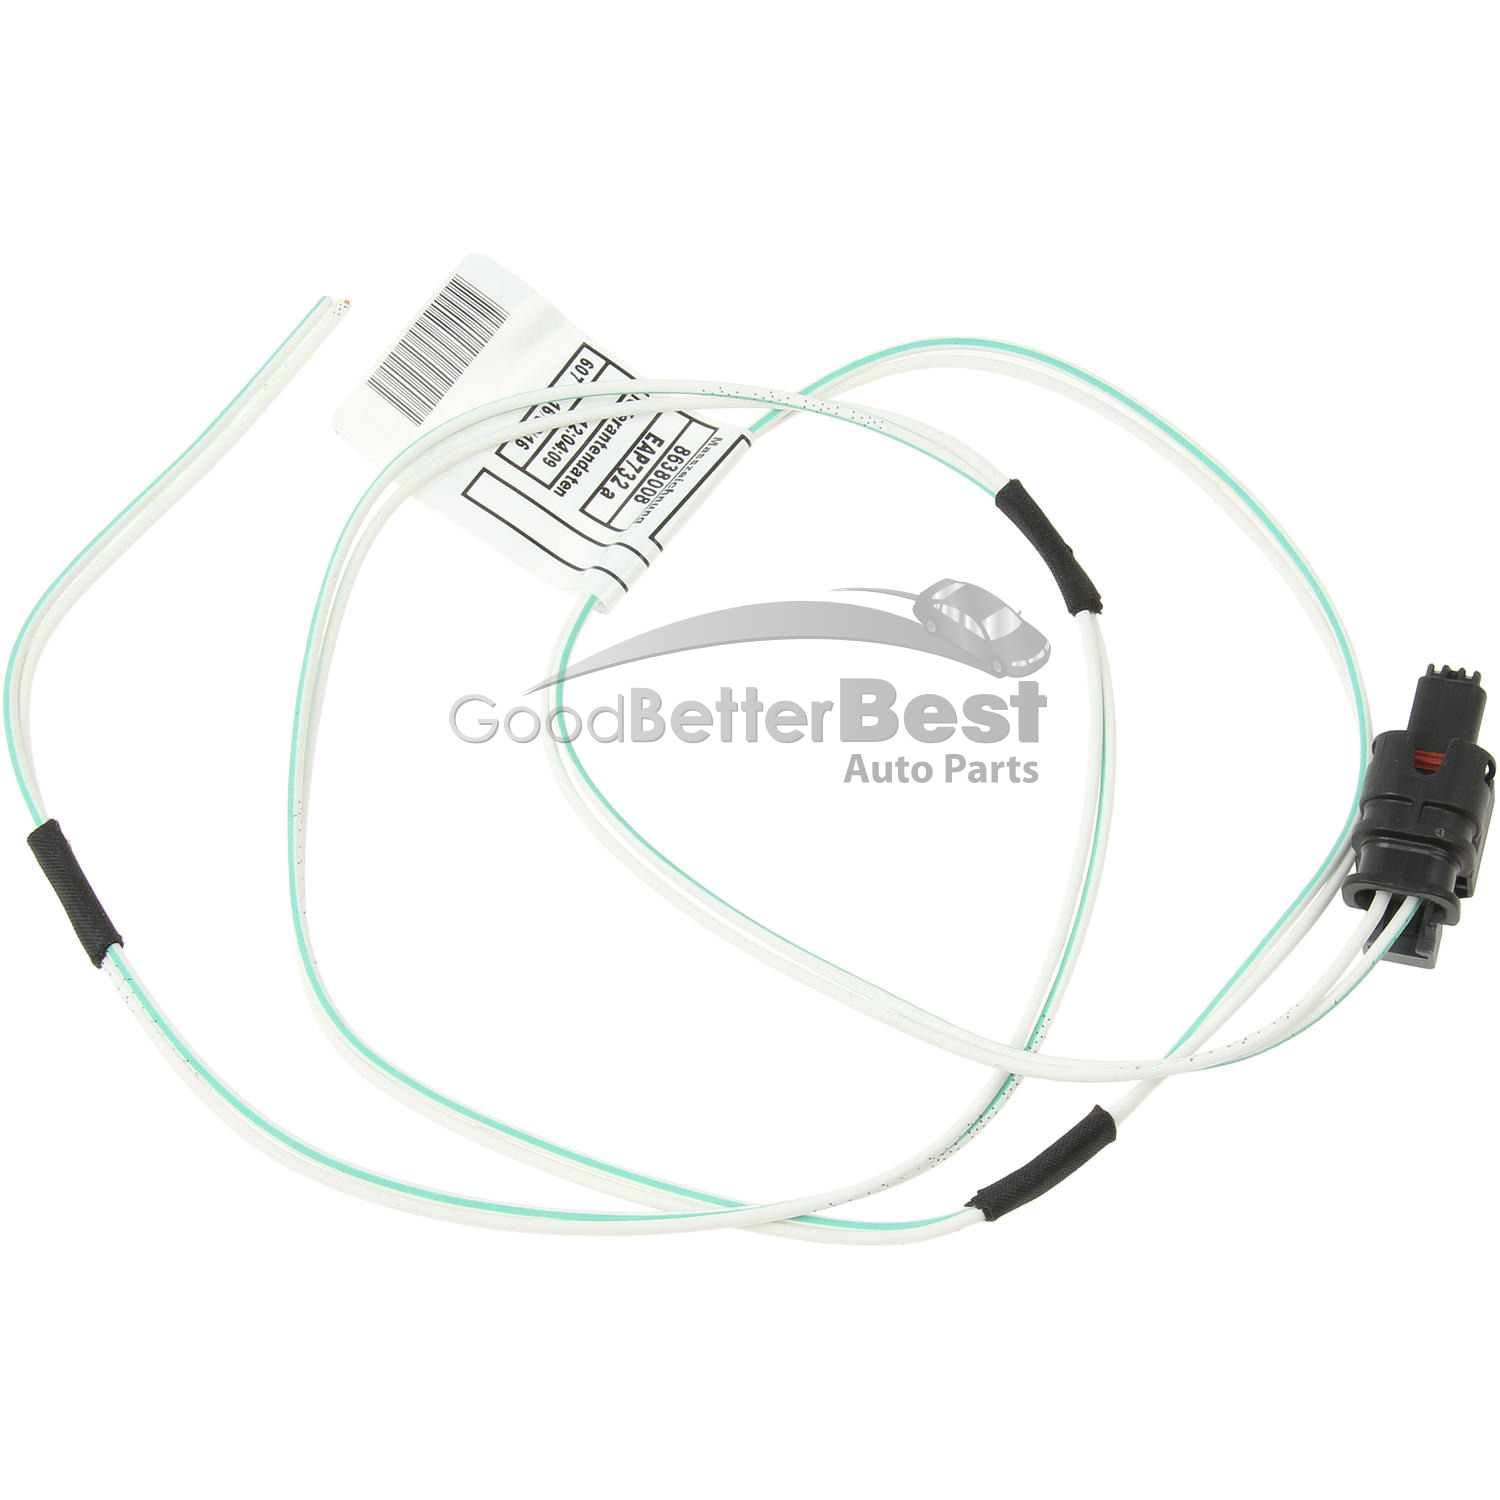 details about new genuine fuel pump wiring harness 12518638006 for bmw